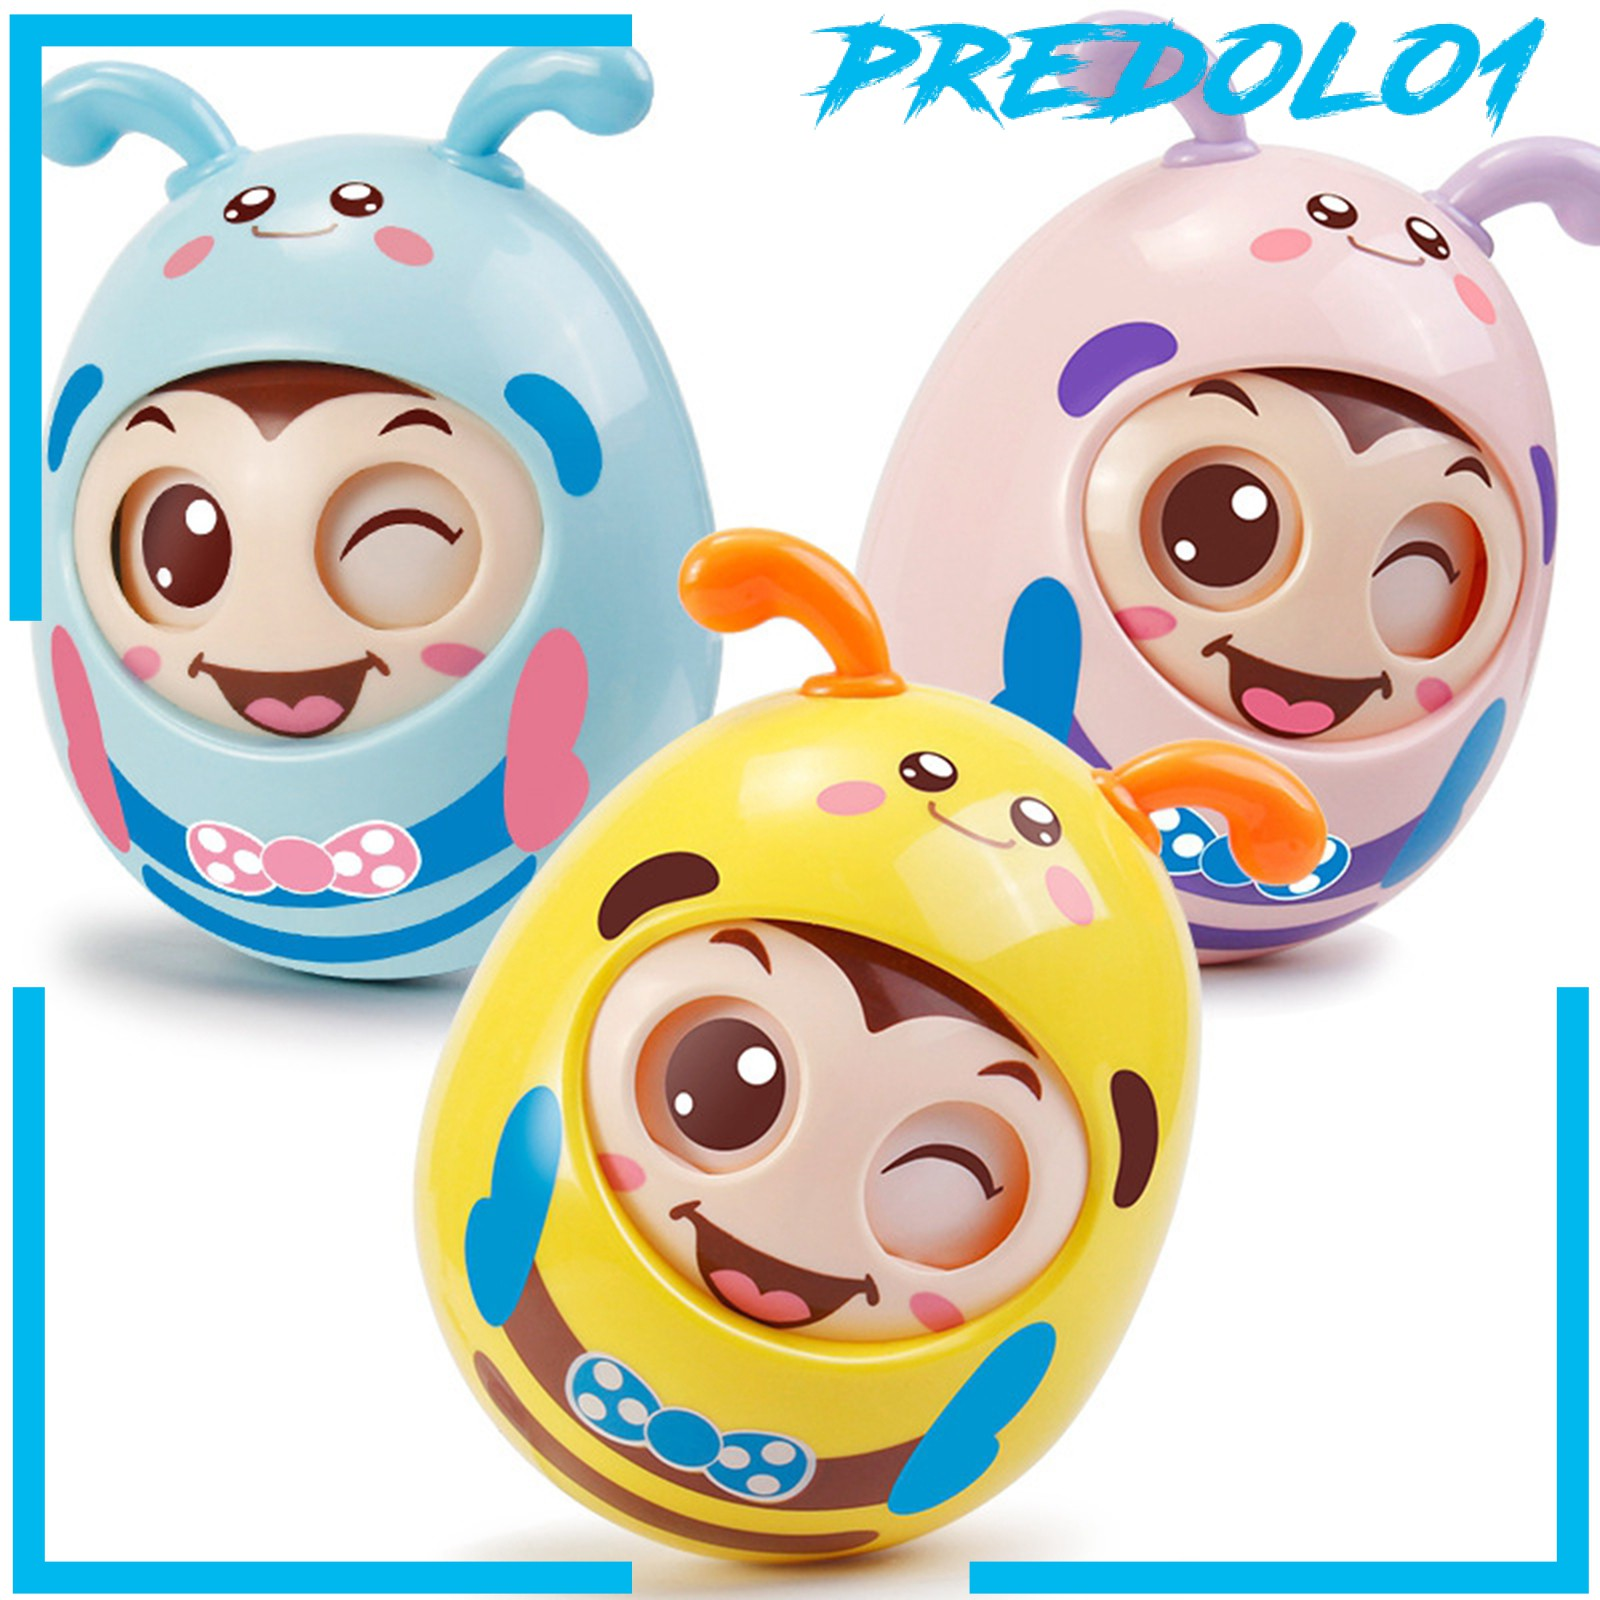 [PREDOLO1] Safety Roly-Poly Tumbler Infant Baby Toys Best Gifts Tummy Time Toys